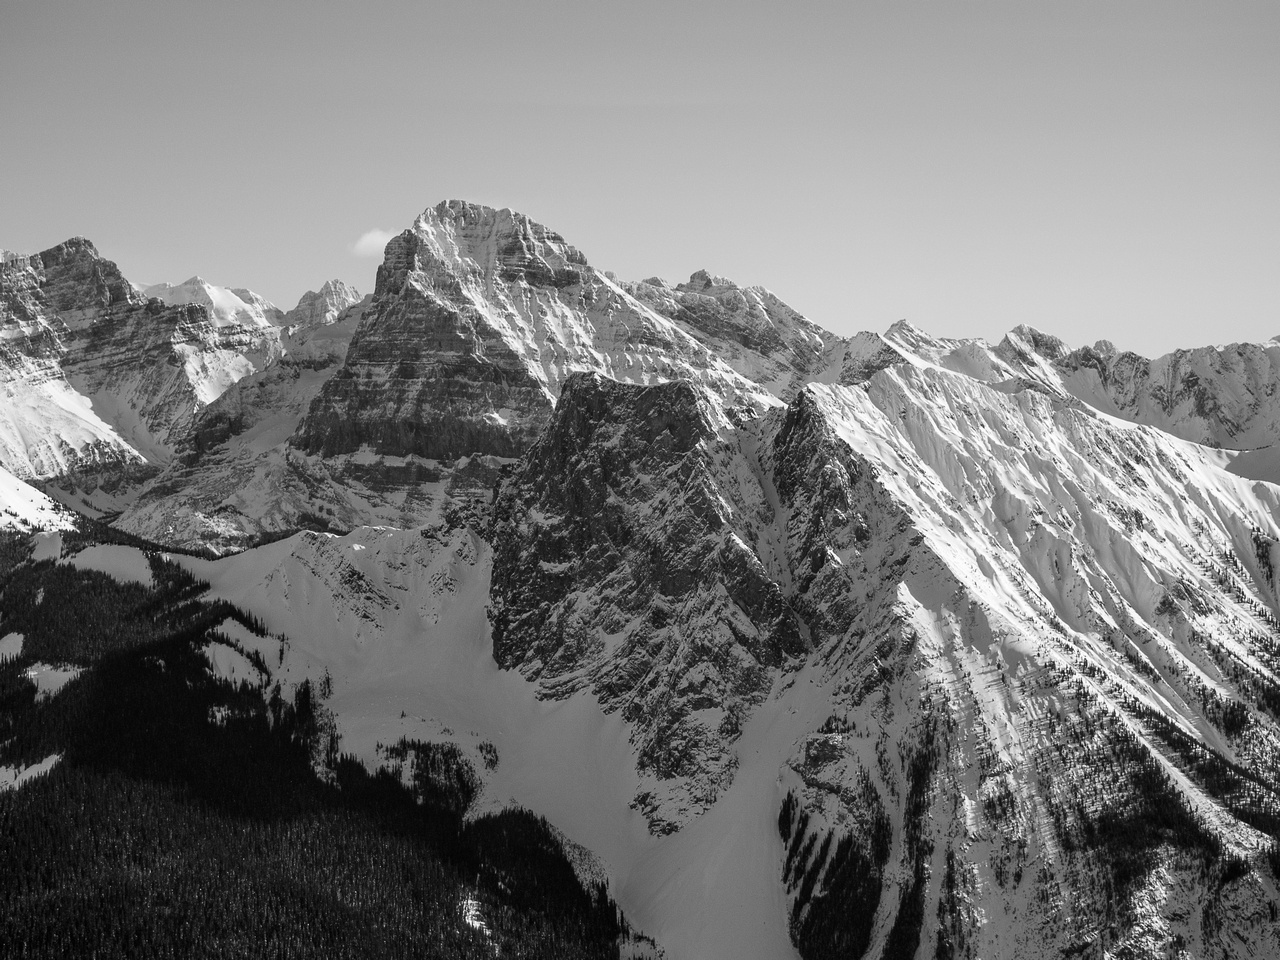 Looking over Burgess (left) and Walcott (right) at Mount Stephen from the summit of Emerald Peak.